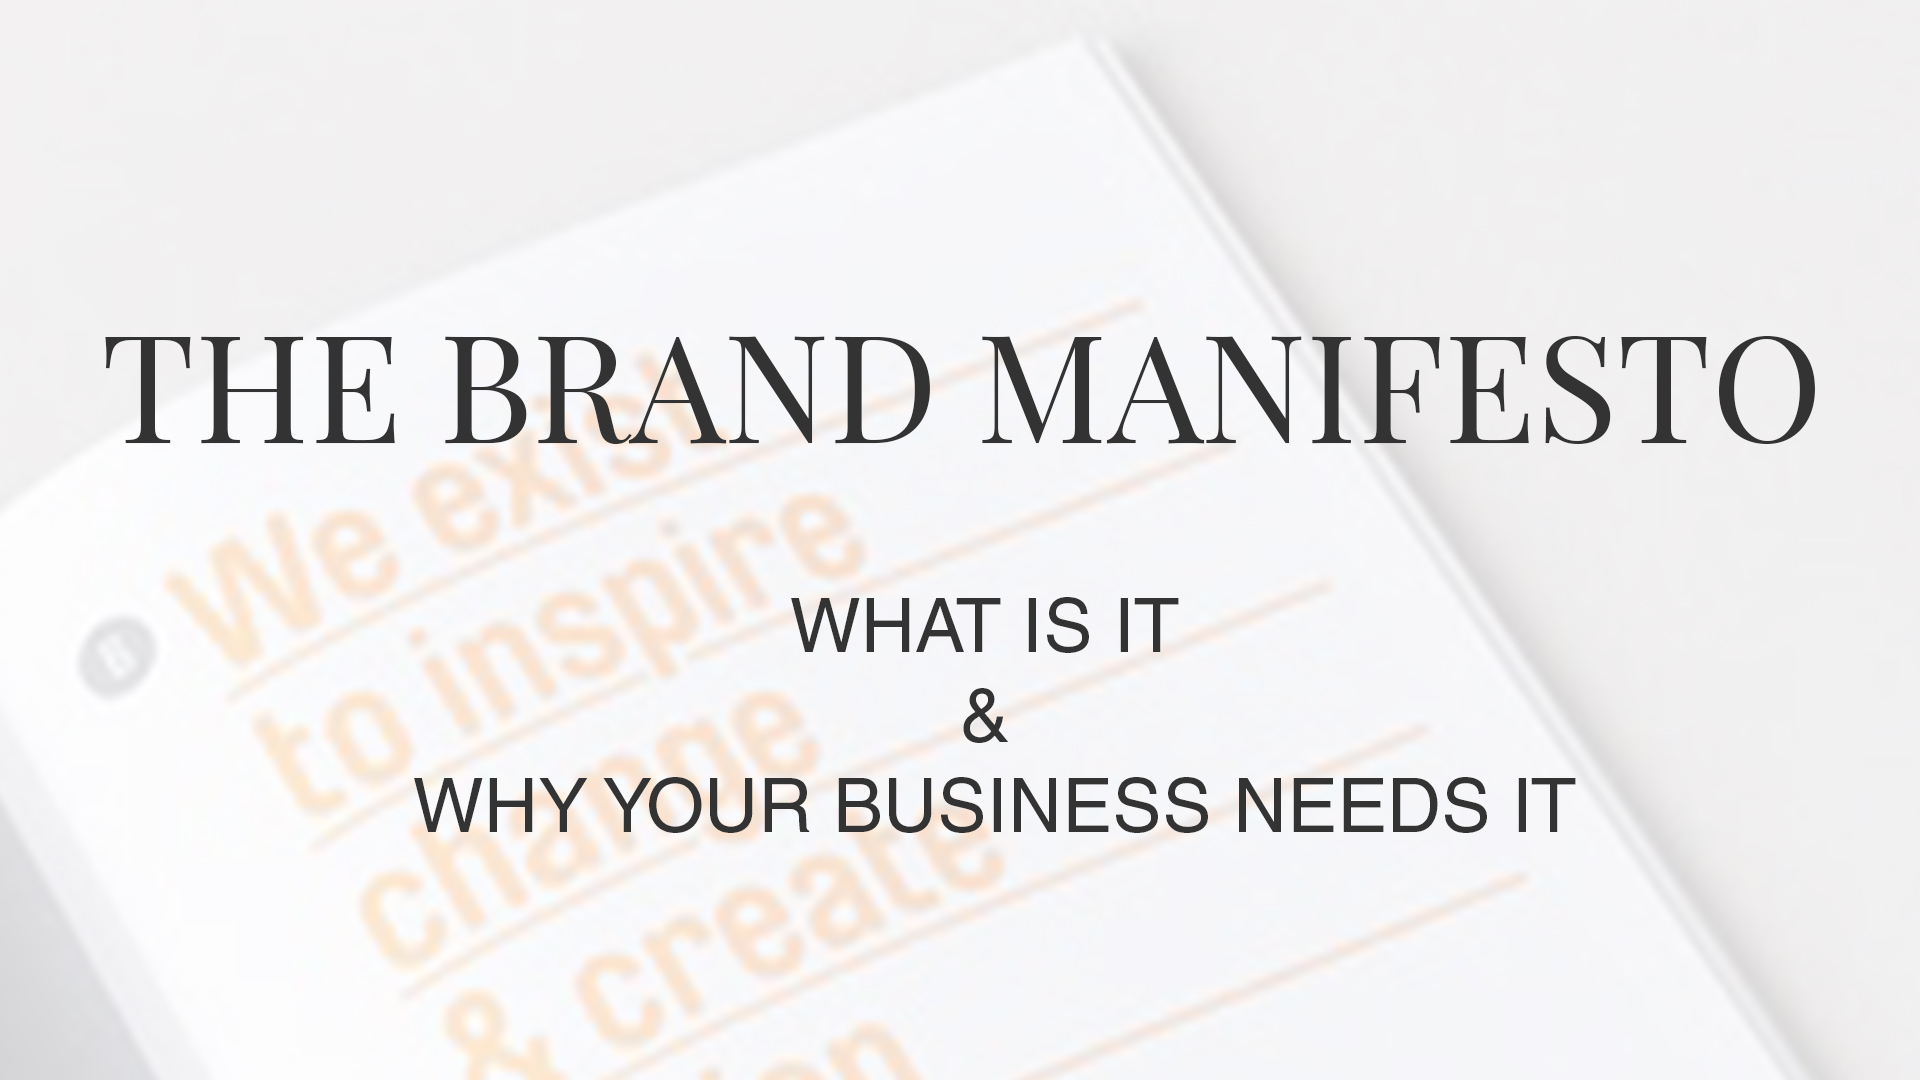 brand manifesto for entrepreneurs and small businesses